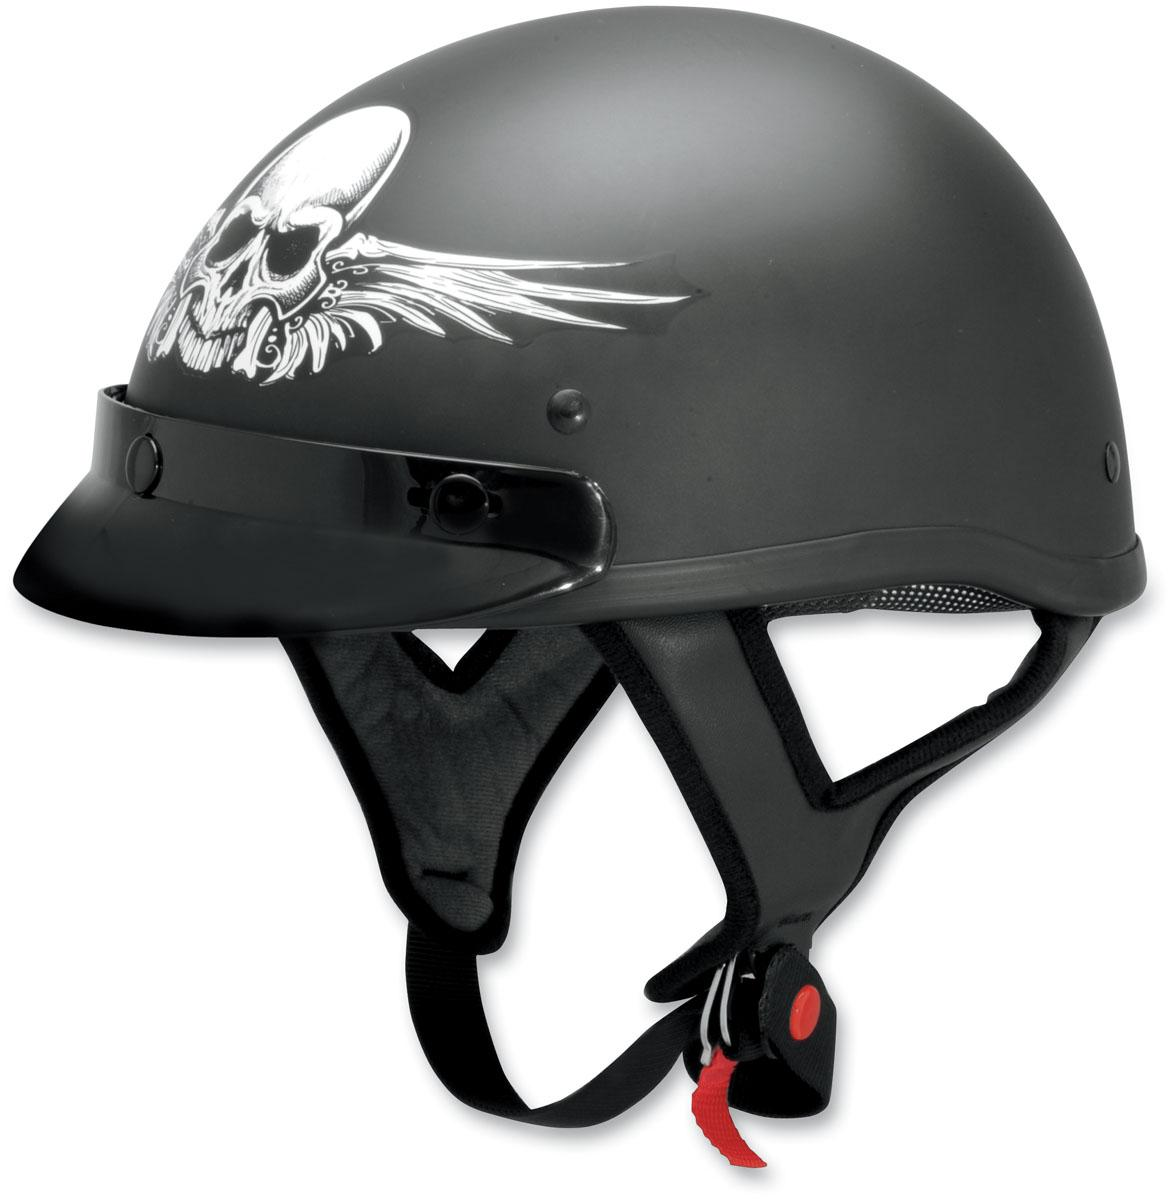 Helmet Warehouse Promo Codes & Deals 23 About Helmet Warehouse Located in Yagoona, with a strong commitment to customer satisfaction, they not only service customers from all .